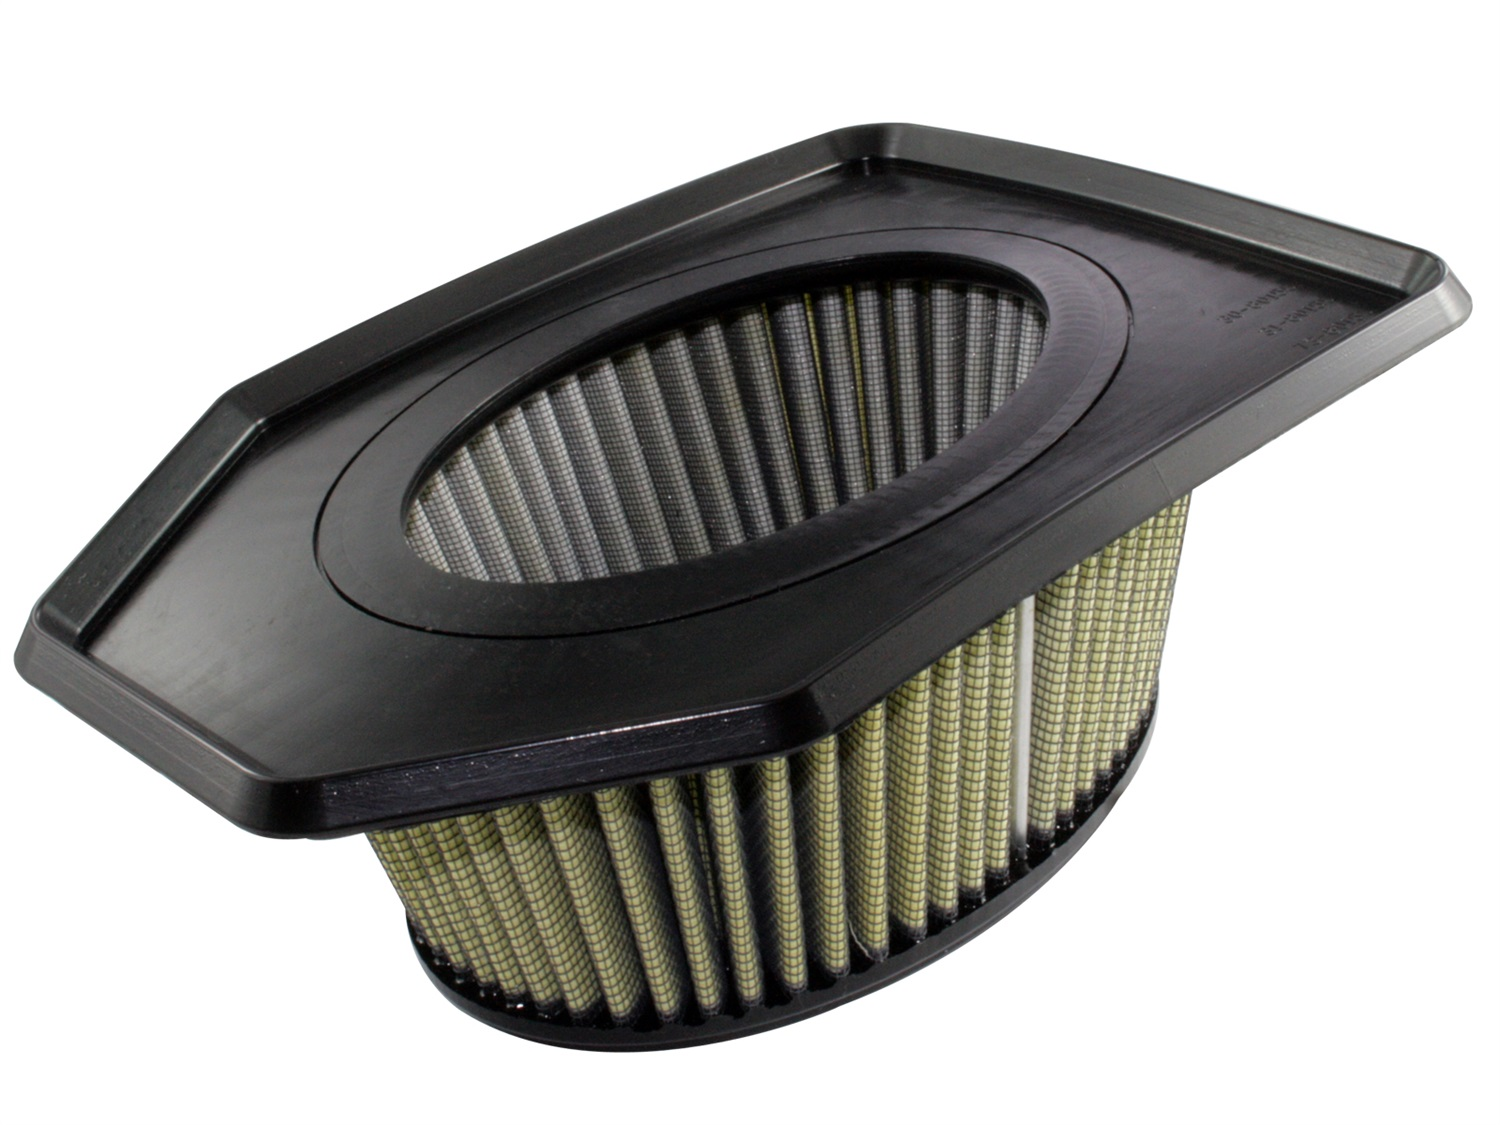 aFe Power 73-80155 MagnumFLOW OE Replacement Pro-GUARD 7 Air Filter 73-80155